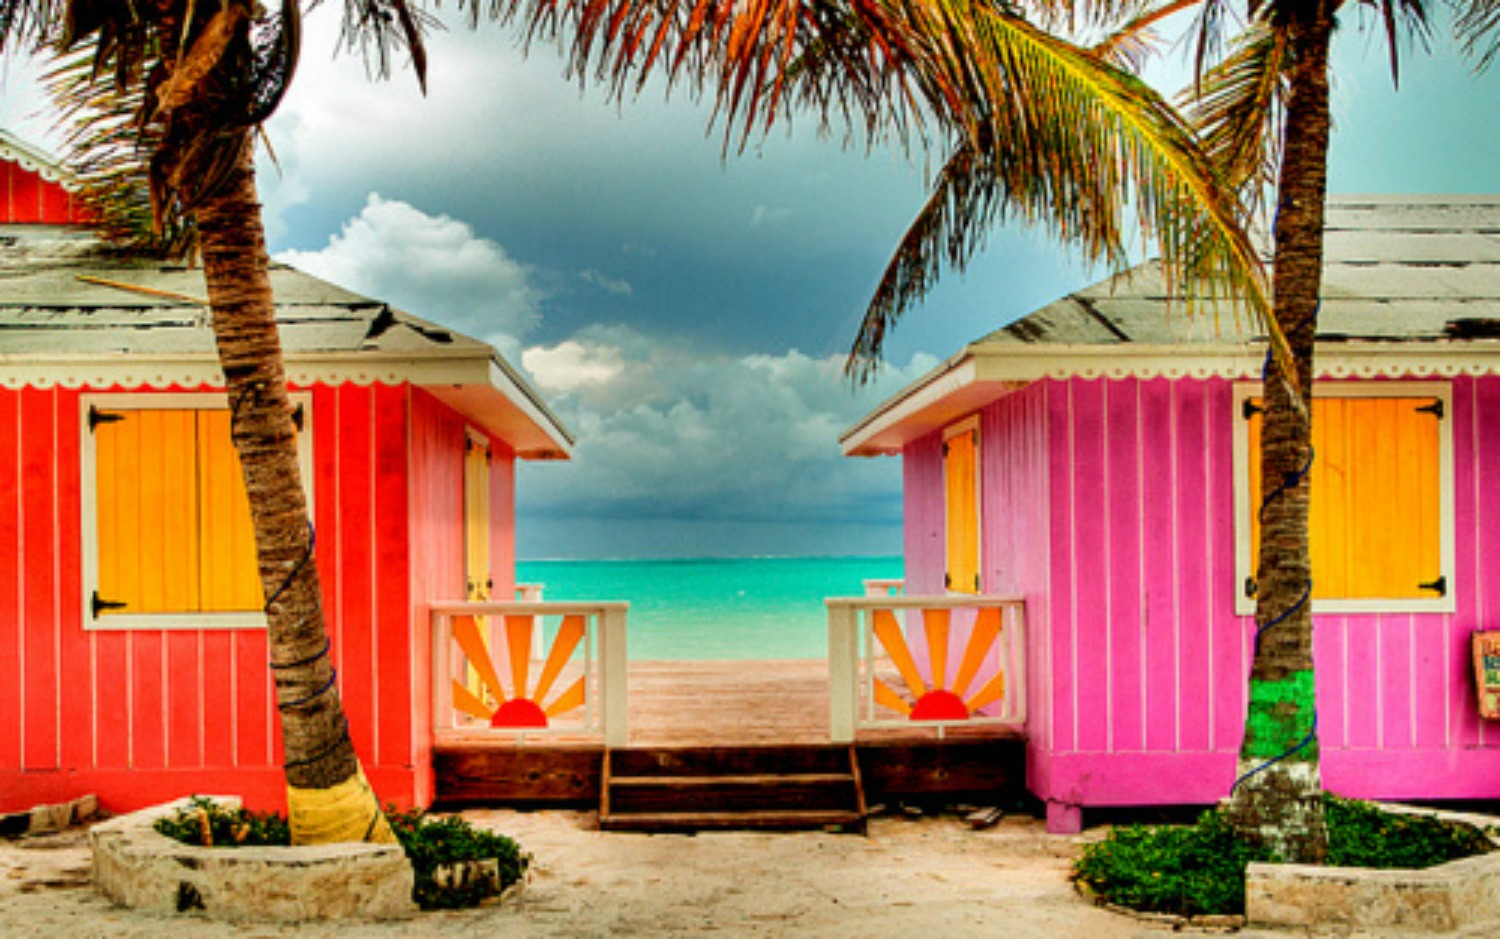 Tropical Island Beach House: TVI WITH PETER JARRETTE: HOT PINK TROPICAL HOMES & HOUSES